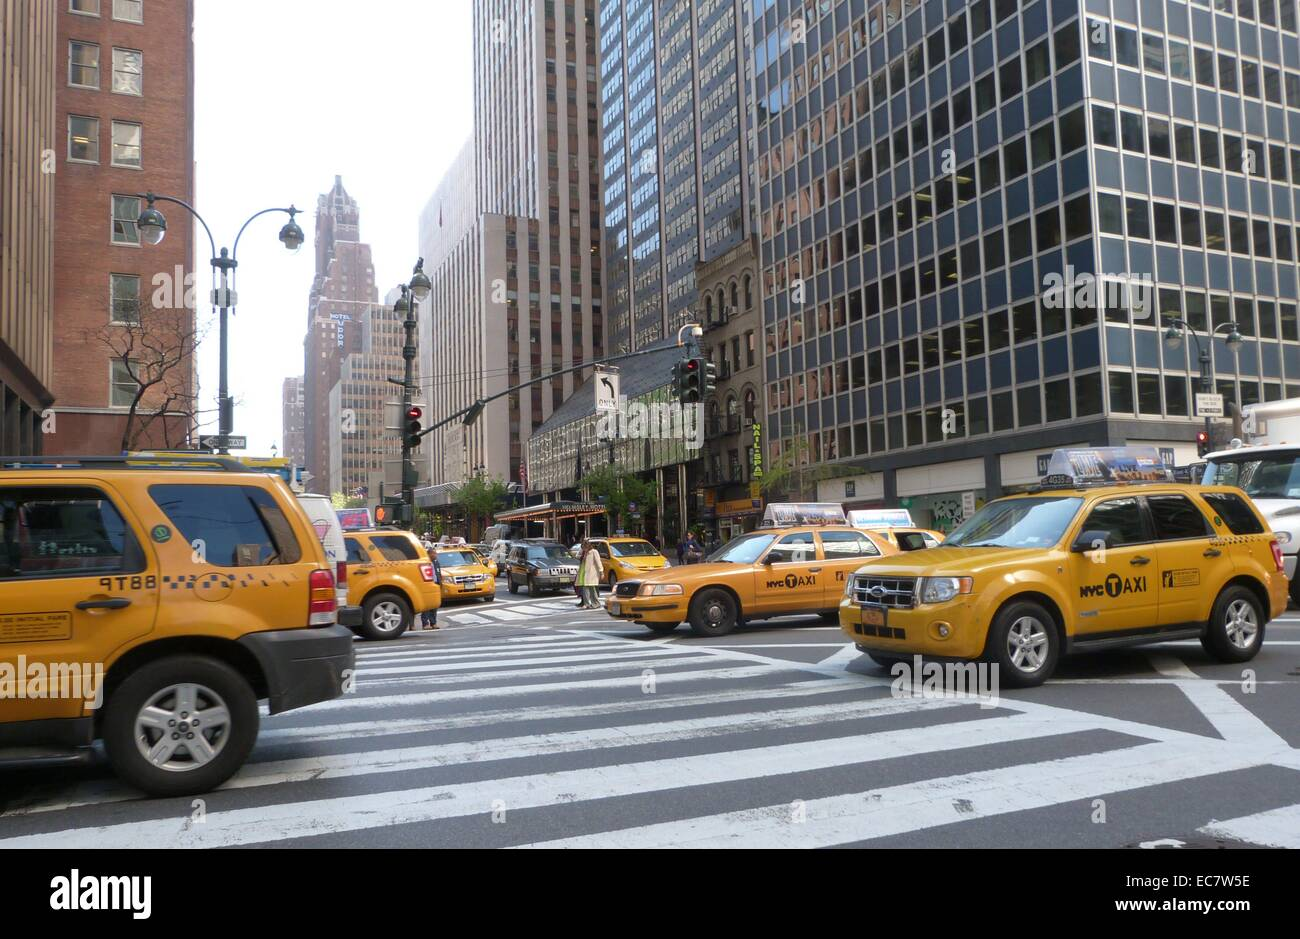 New York traffic crosses 3rd Avenue and east 42nd street. - Stock Image